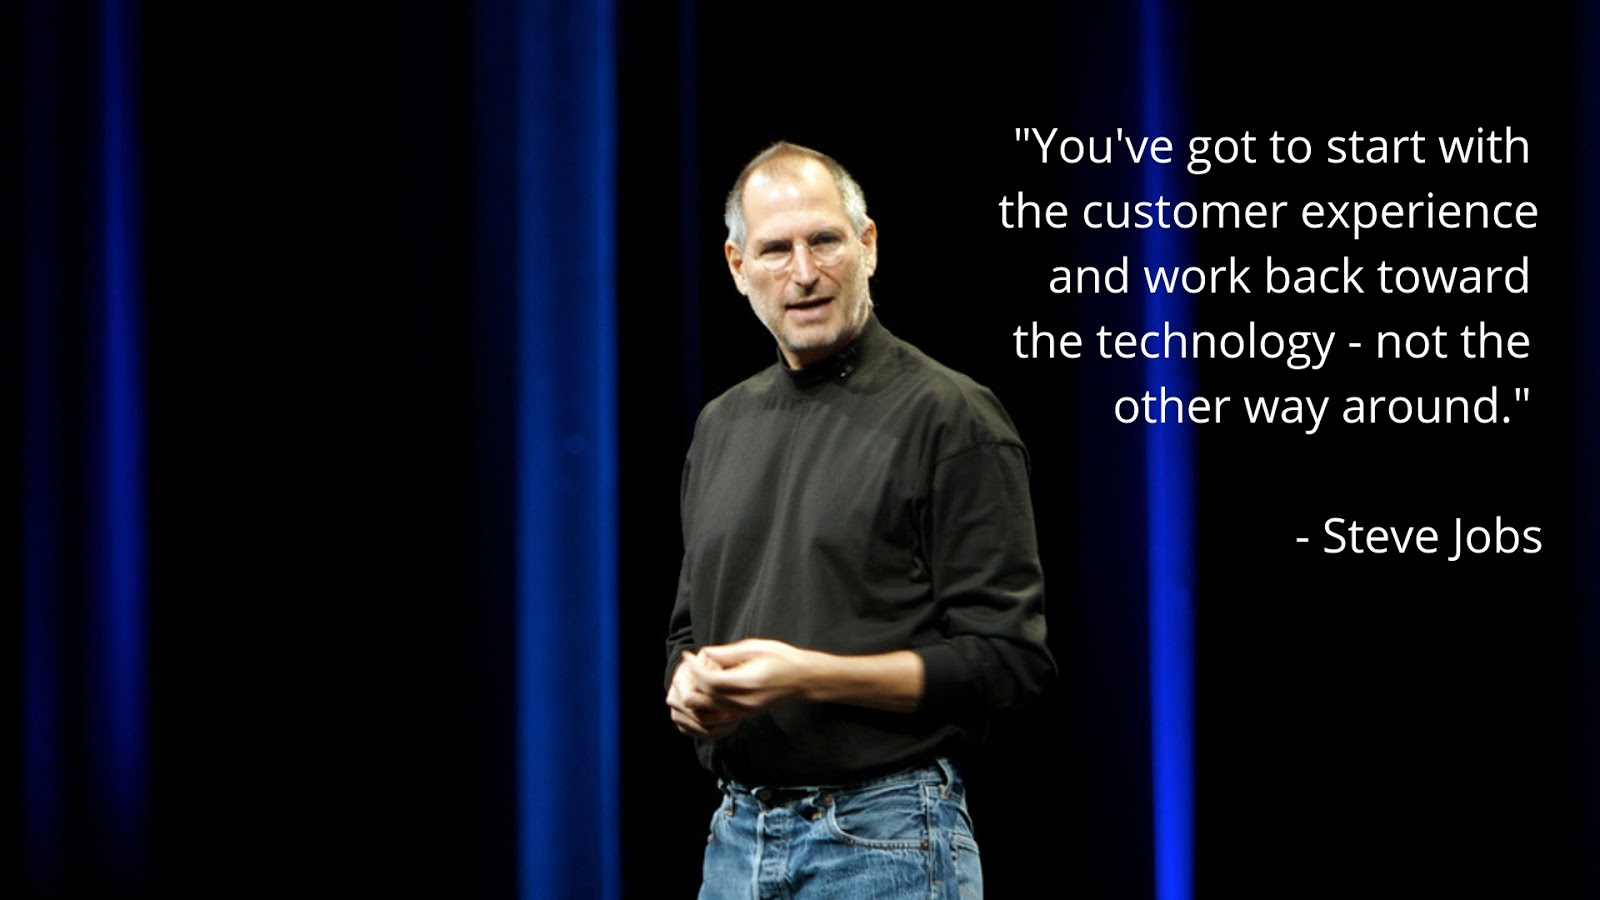 Steve Jobs customer experience research quote